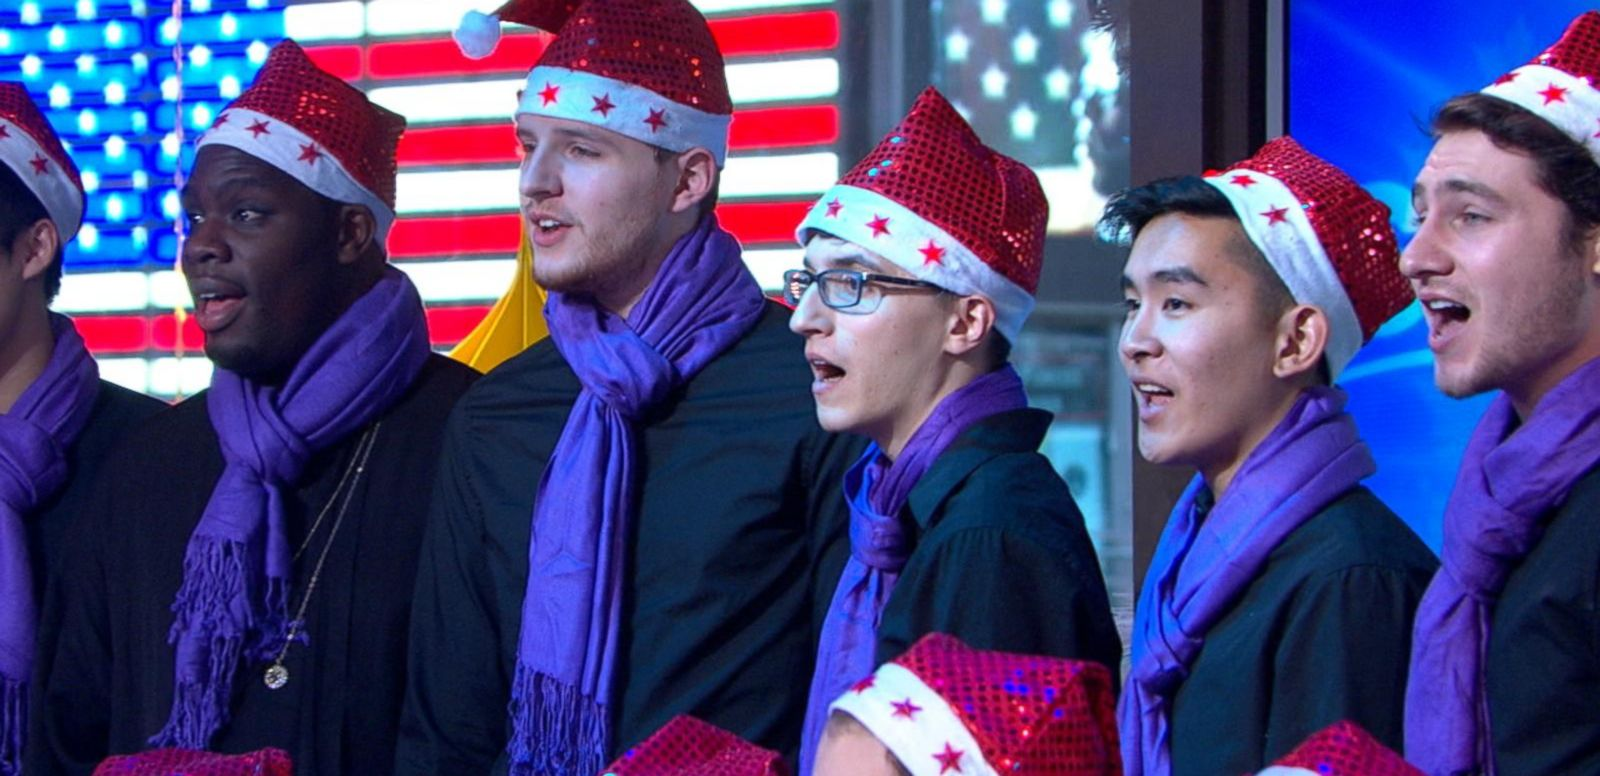 VIDEO: NYU's Glee Club Is Home for the Holidays